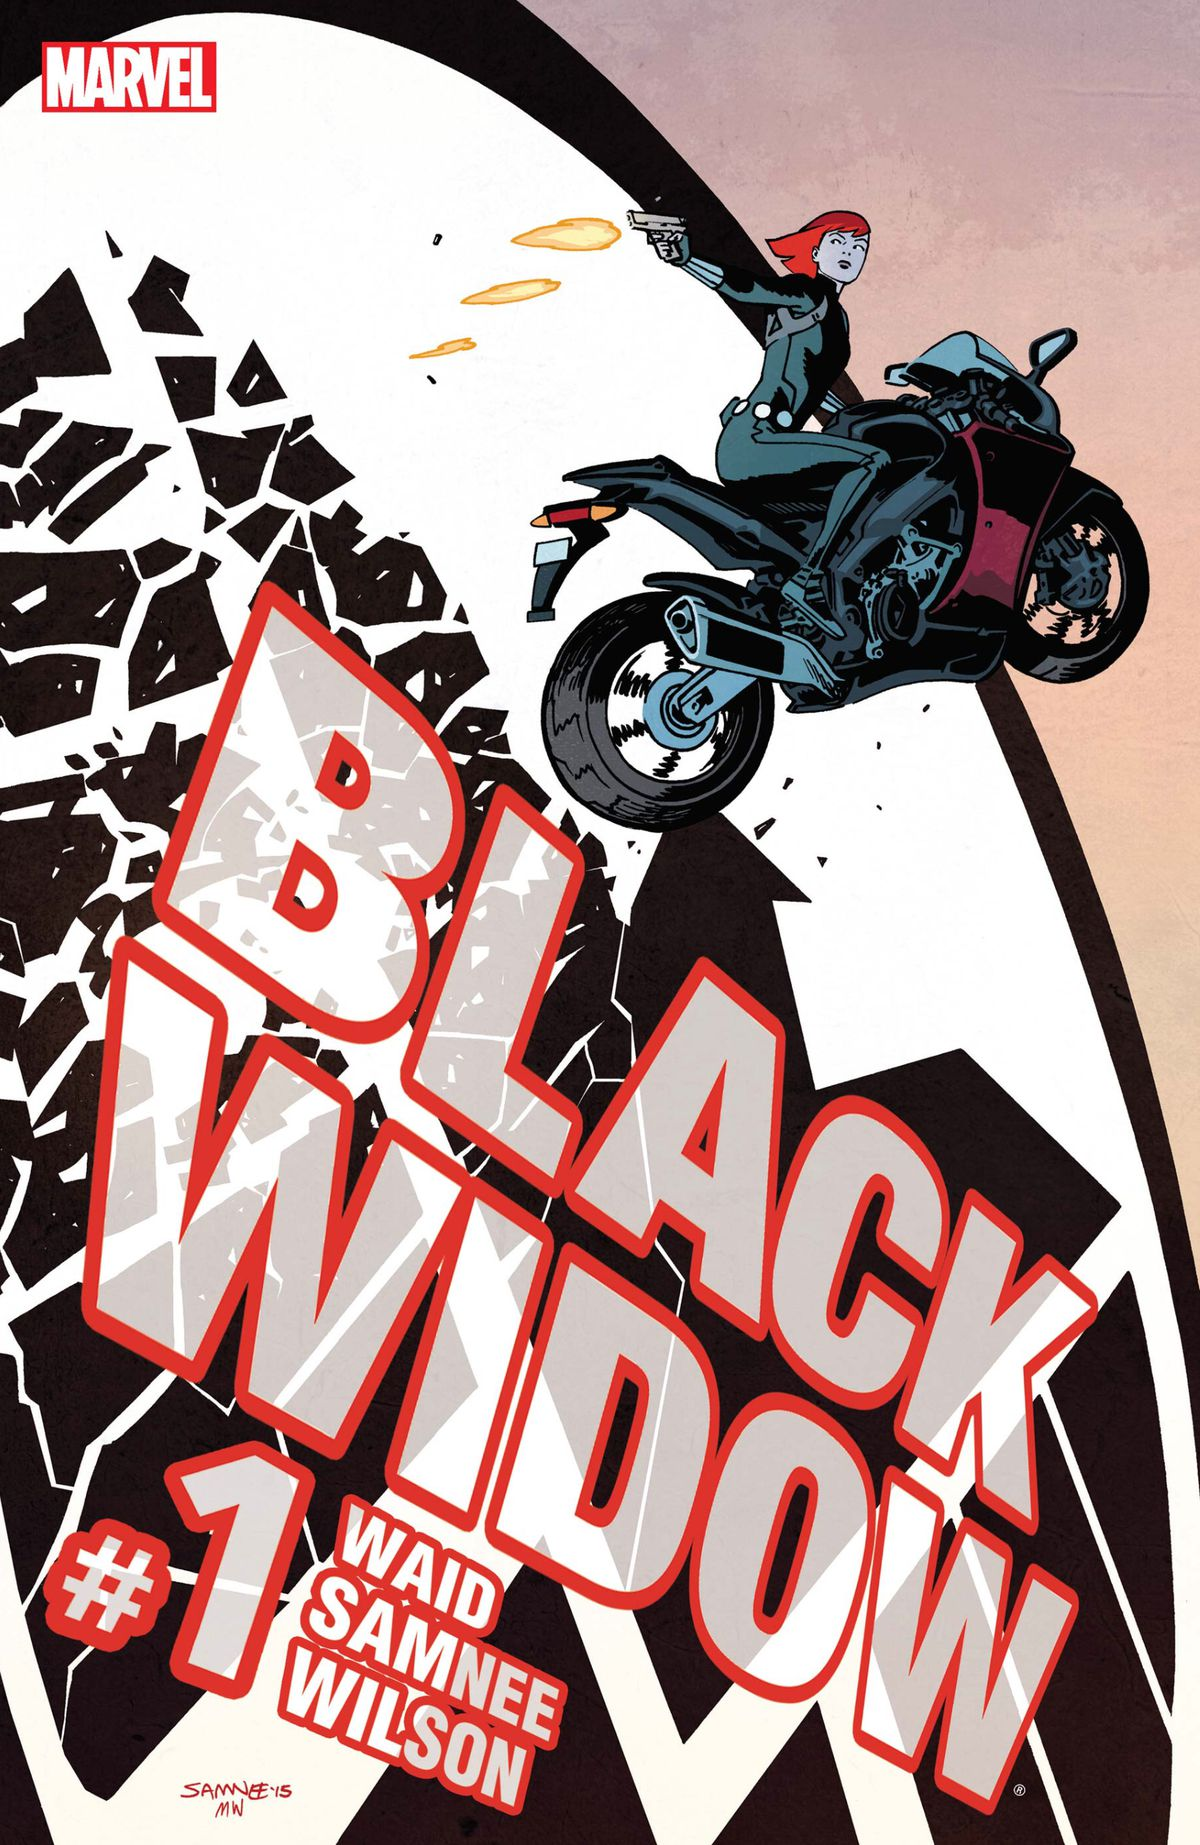 Black Widow/Natasha Romanoff fires a pistol as she leaps her a motorcycle through a glass window emblazoned with the SHIELD symbol on the cover of Black Widow #1 (2016).